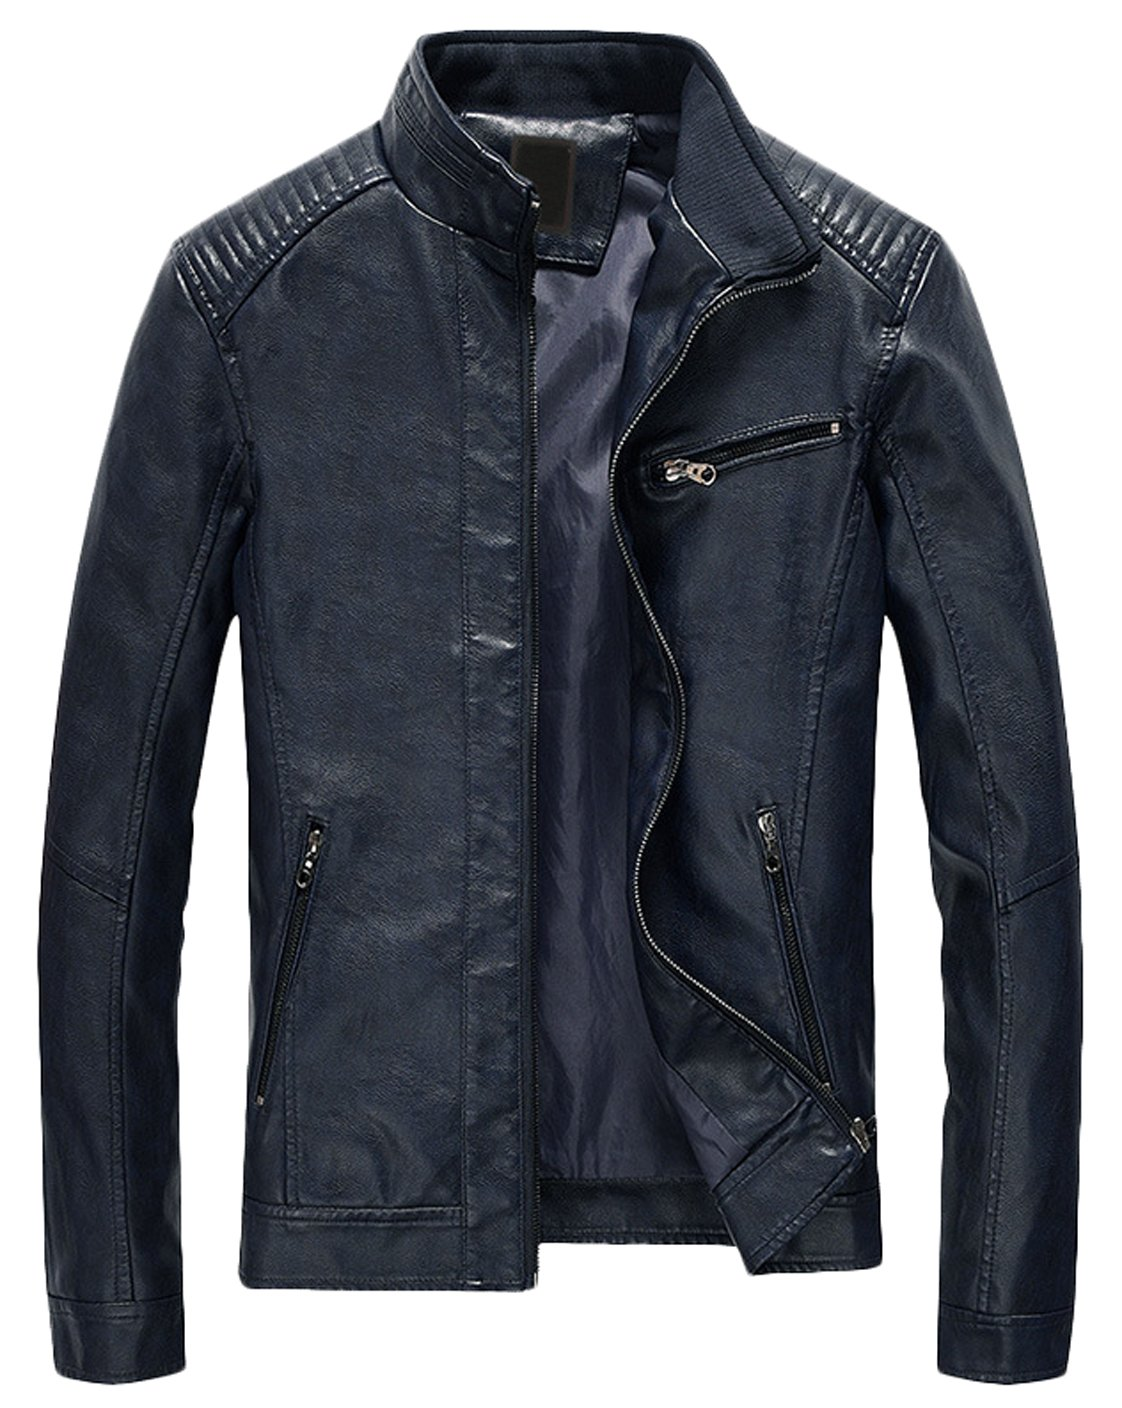 Youhan Men's Casual Zip Up Slim Bomber Faux Leather Jacket (Medium, Dark Blue) by Youhan